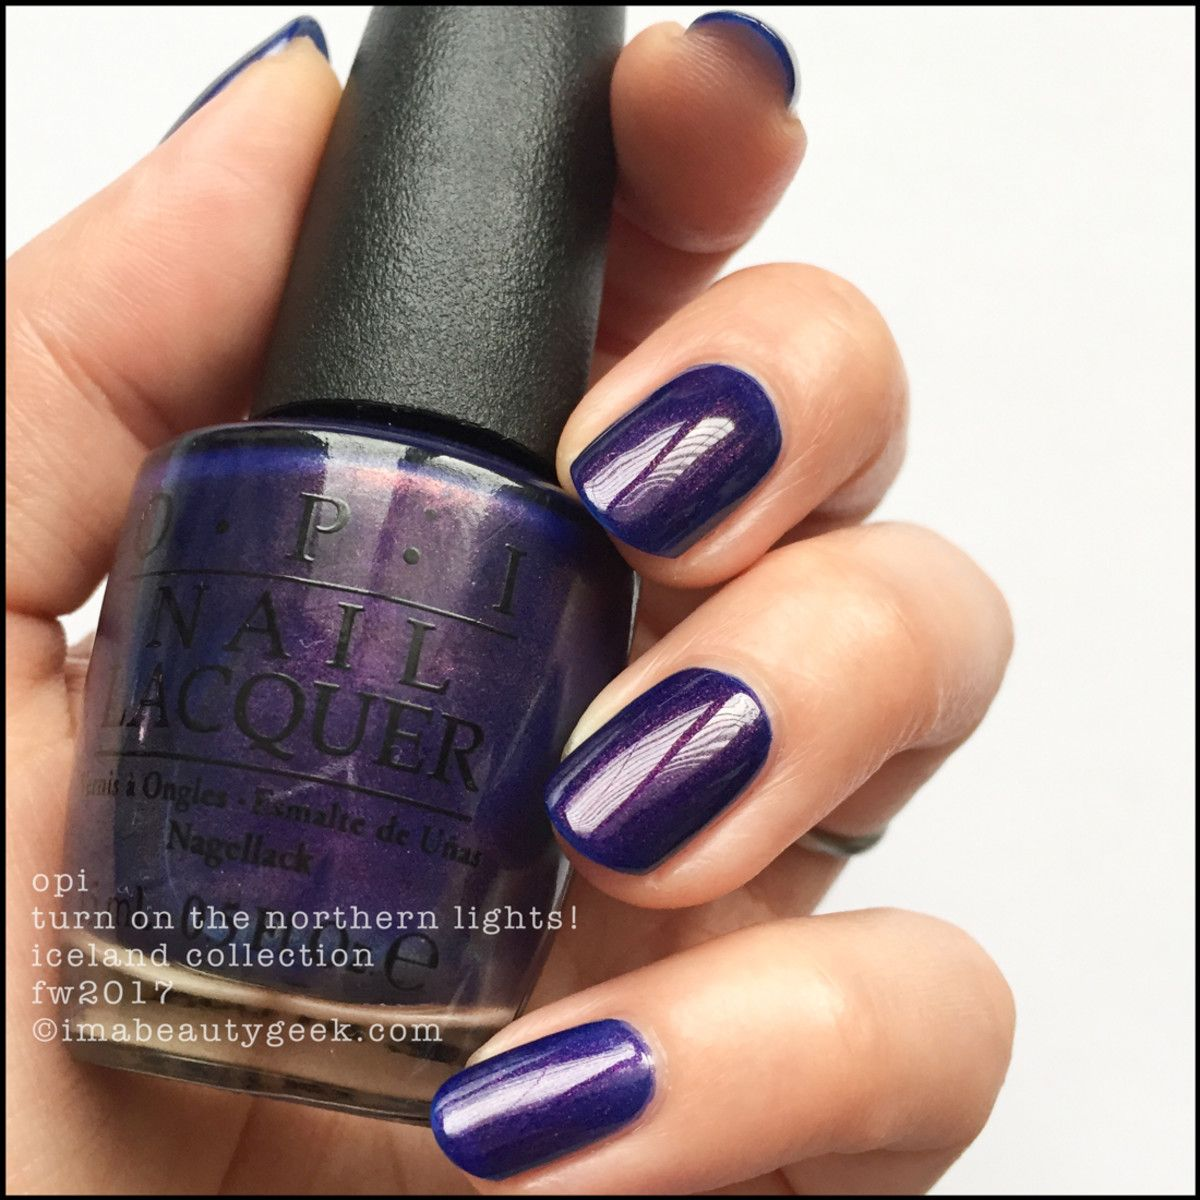 Opi Iceland Collection Swatches Amp Review Fw 2017